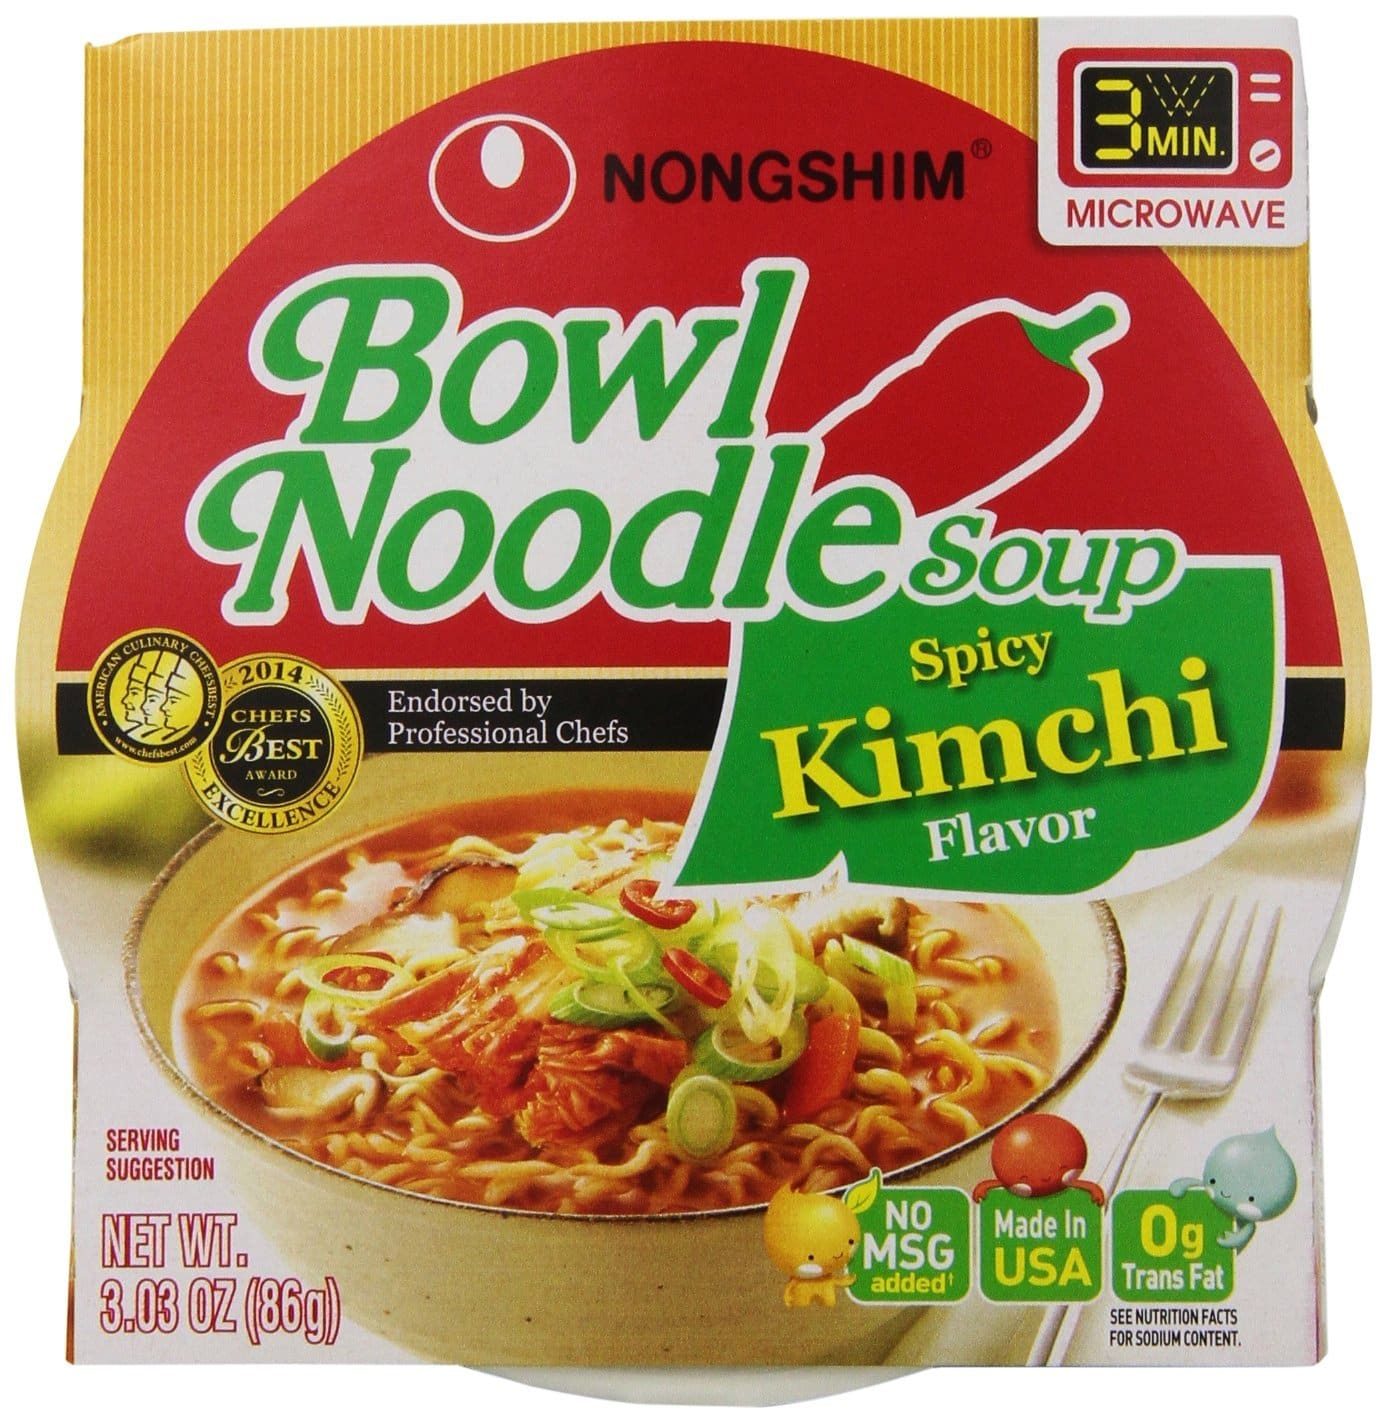 12-Pack of 3.03oz Nongshim Spicy Kimchi Noodle Soup Bowl  $11 + Free Shipping